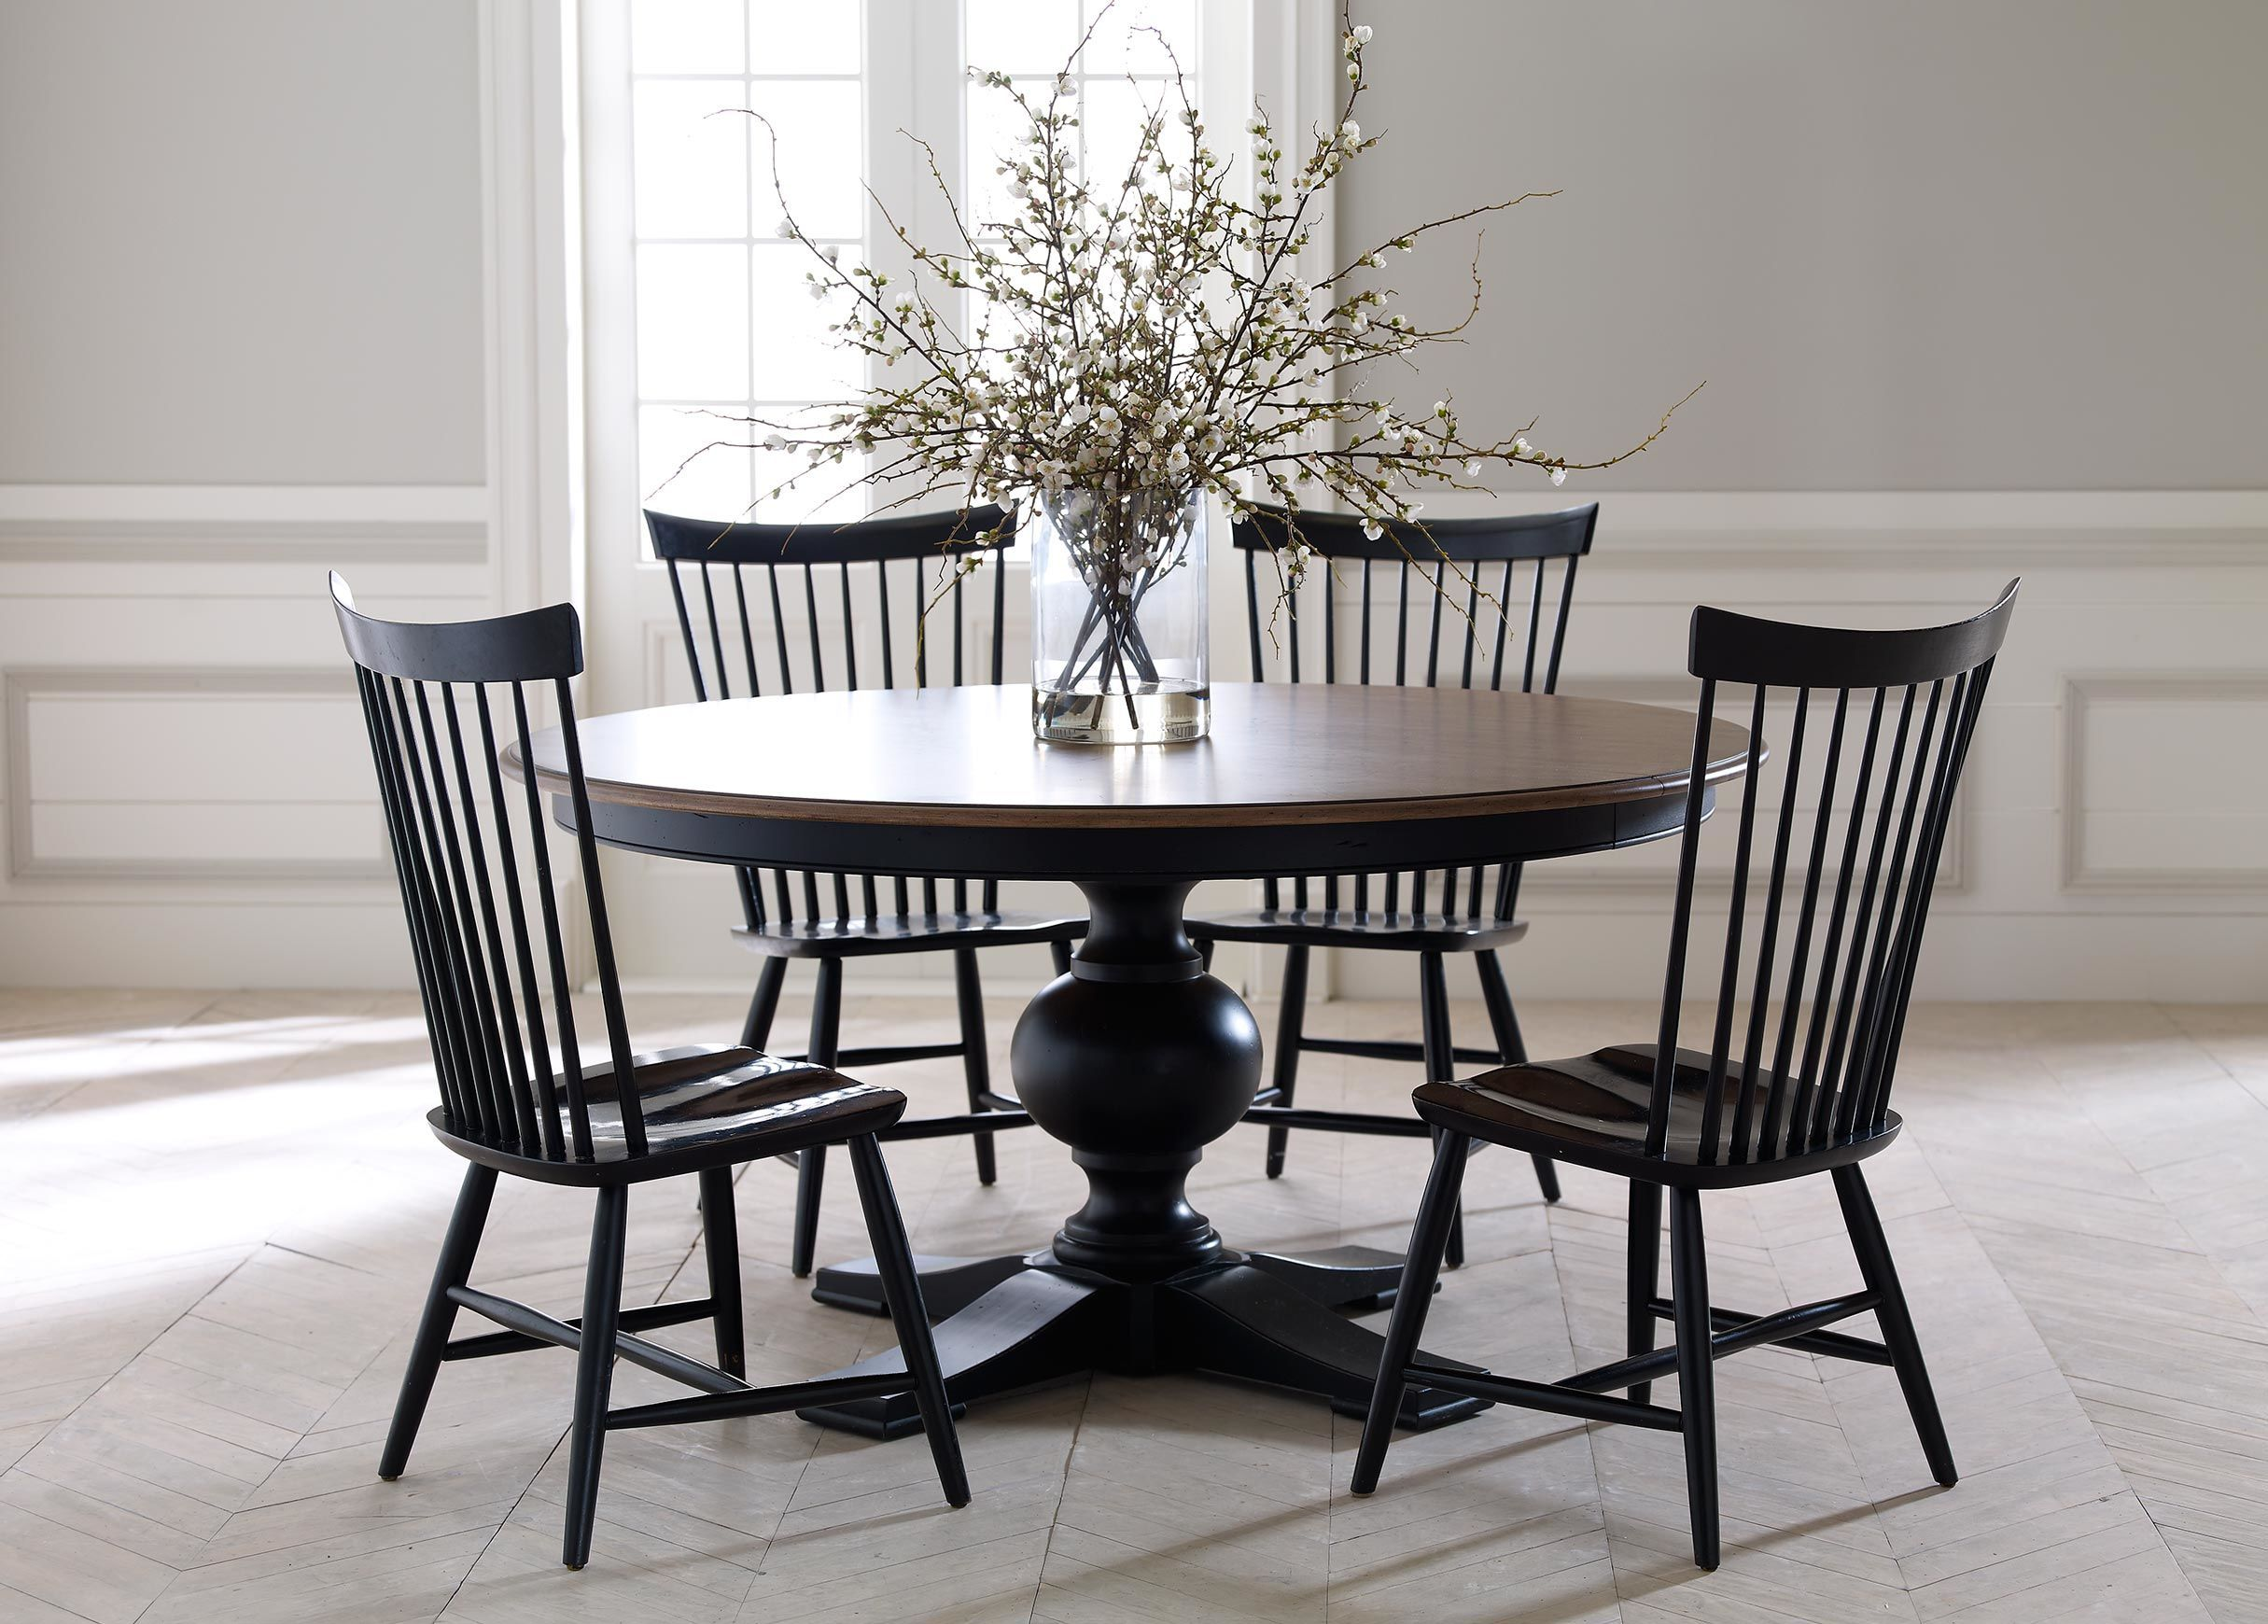 Good Berkshire Side Chair From Ethan Allen. Choice Of Finish. $309 On Sale.  French Country Dining TableCountry ...